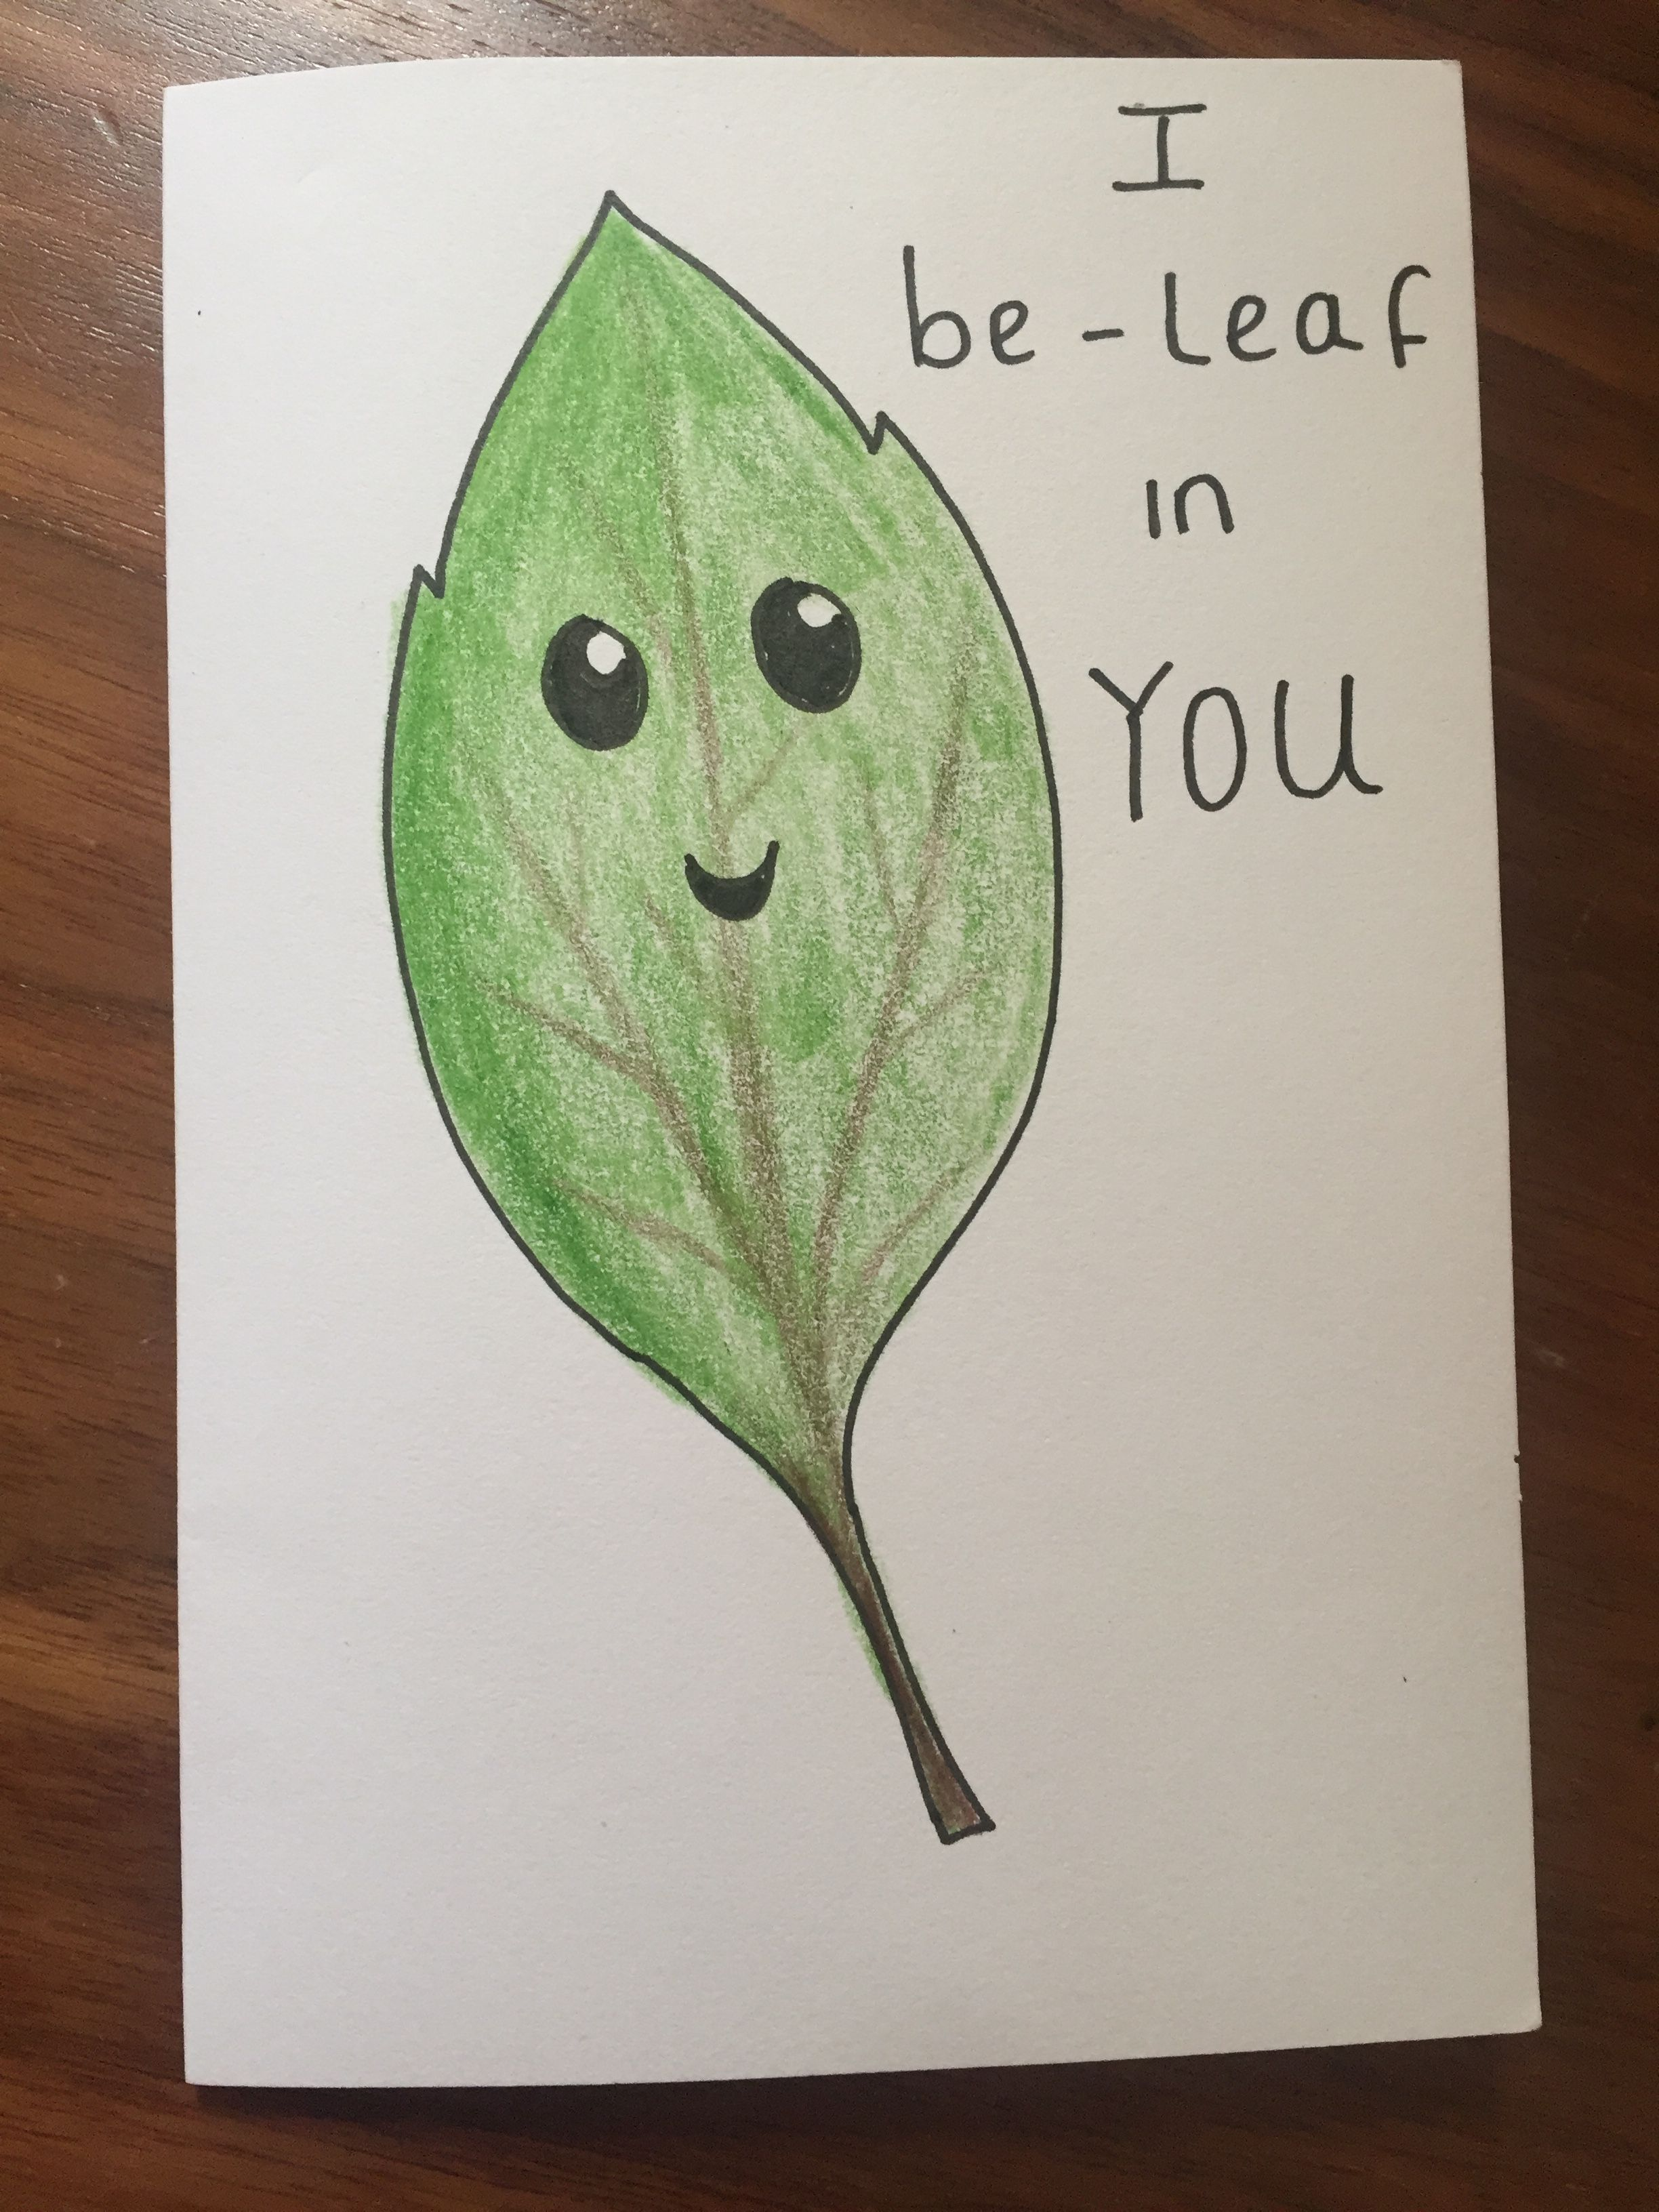 Good luck card friendship be leaf in you exams 2017 crayola cards good luck card friendship be leaf in you exams 2017 crayola kristyandbryce Images